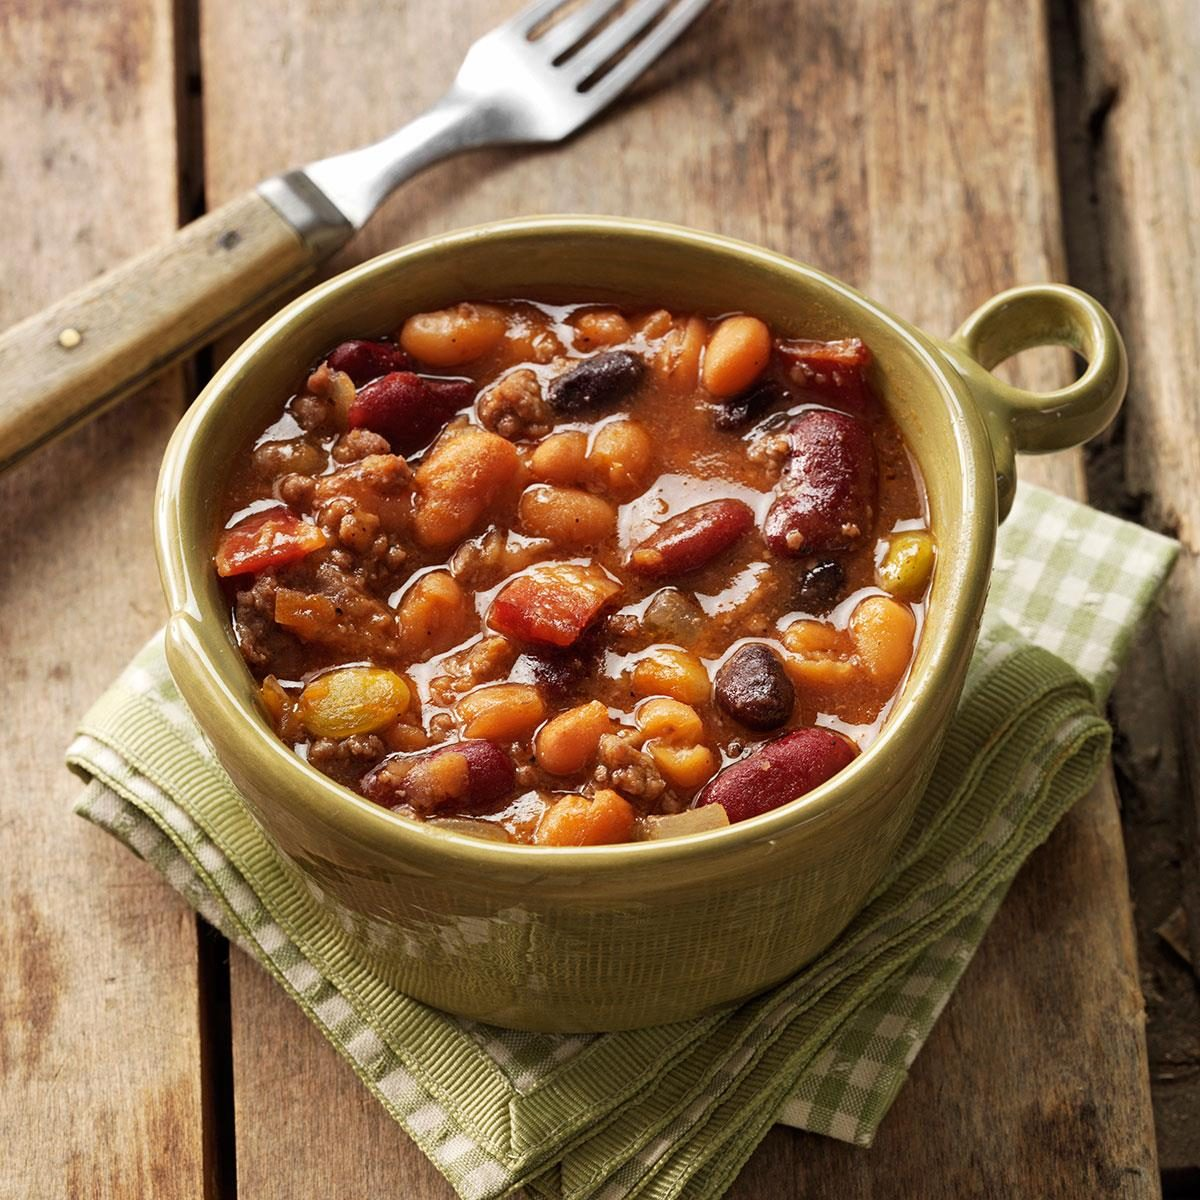 baked bean Step 1, watch how to make this recipe step 2, preheat oven to 350 degrees f step 3, in a dutch oven, mix onion, pork and beans, mustard, maple syrup, light brown sugar, ketchup, and lemon juice top with the bacon pieces bake, covered, for 45 to 60 minutes.